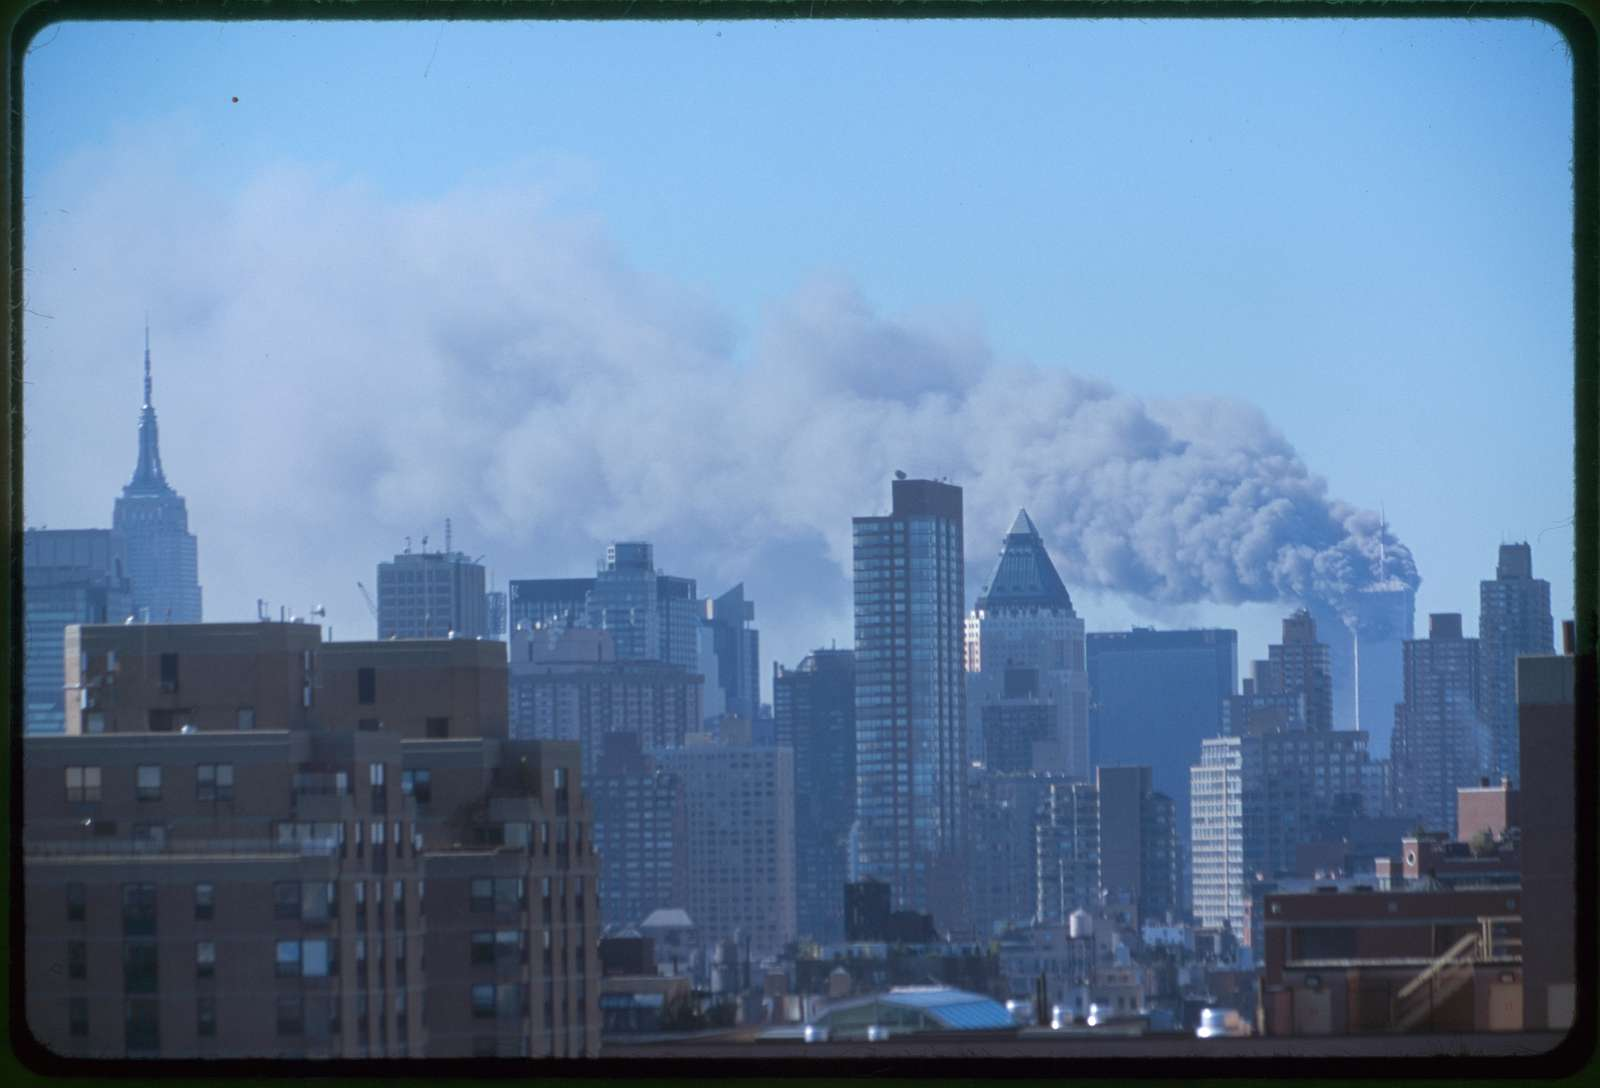 [Skyline of Manhattan with smoke billowing from the Twin Towers following September 11th terrorist attack on World Trade Center, New York City]